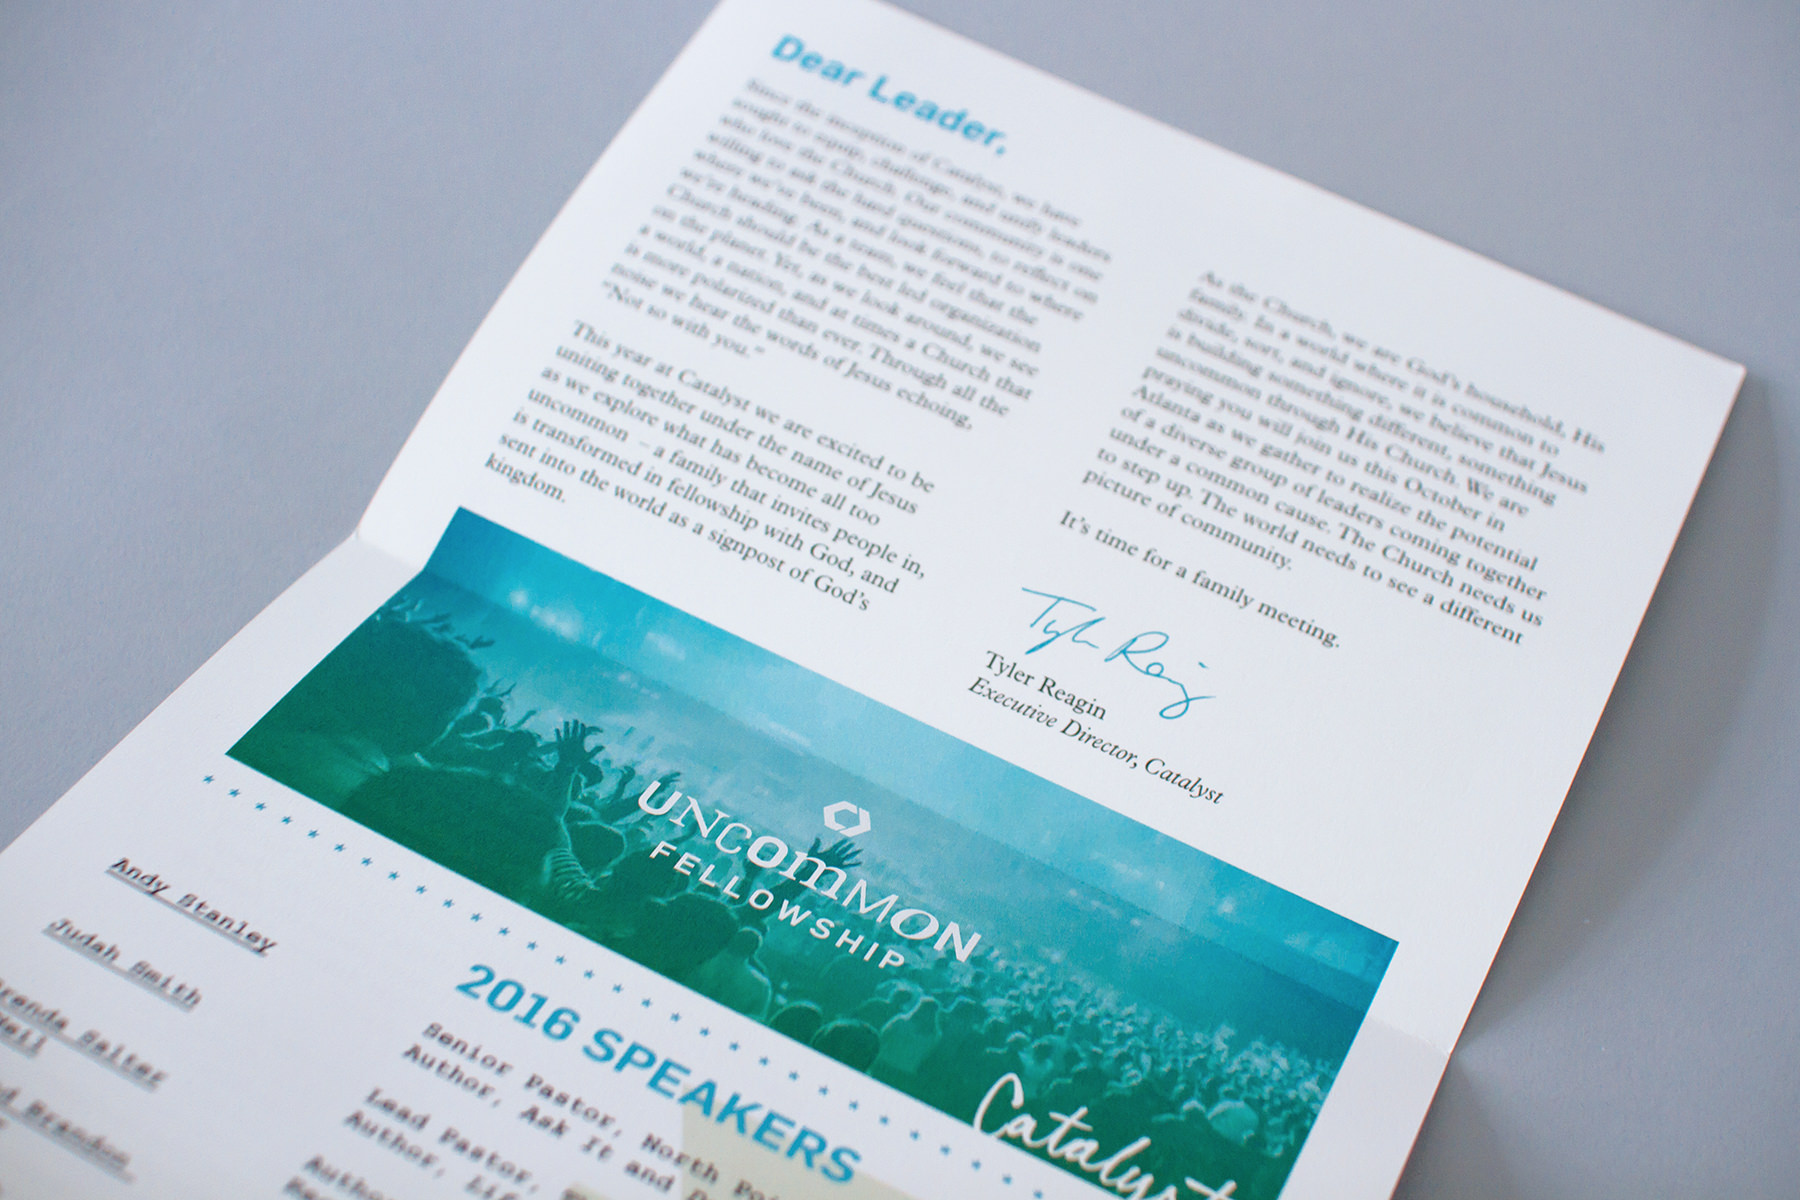 On the back of the newsletter design is a letter from the Catalyst executive director and a reveal of the conference theme logo.